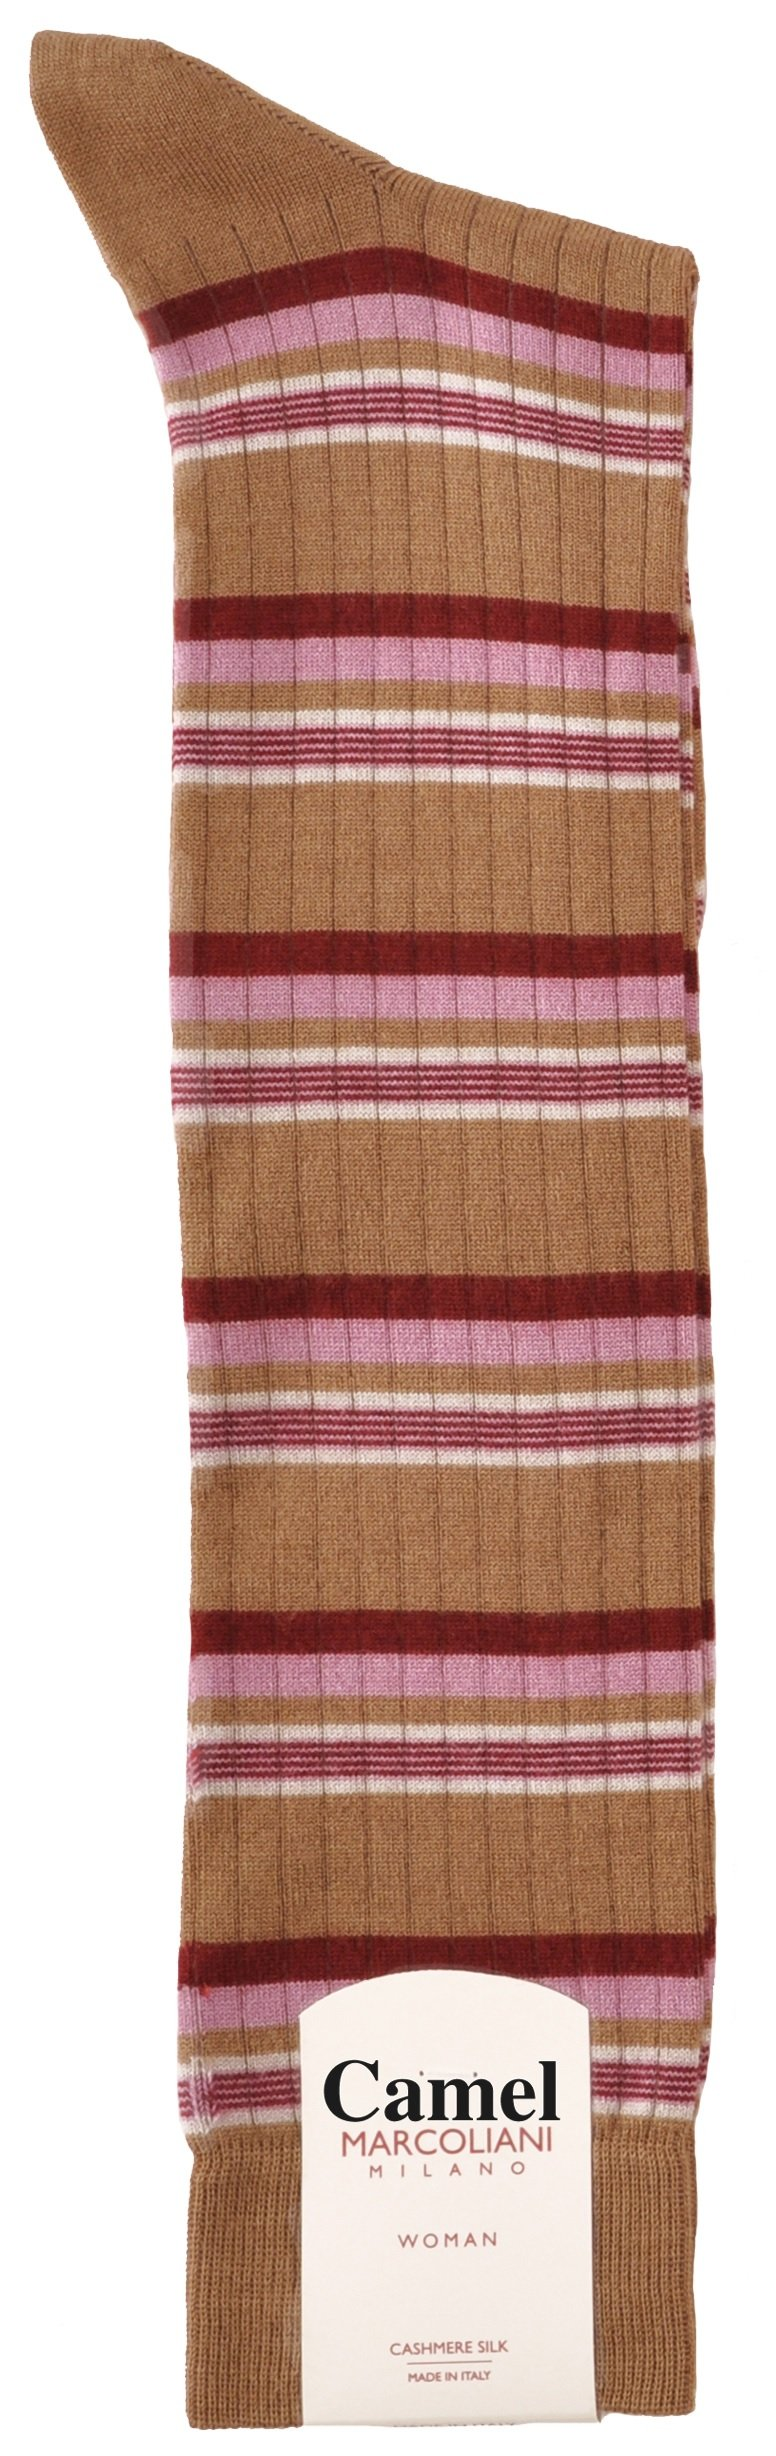 LIMITED EDITION Knee-High Cashmere & Silk Socks Chic Fashion Stripe - One Pair Camel